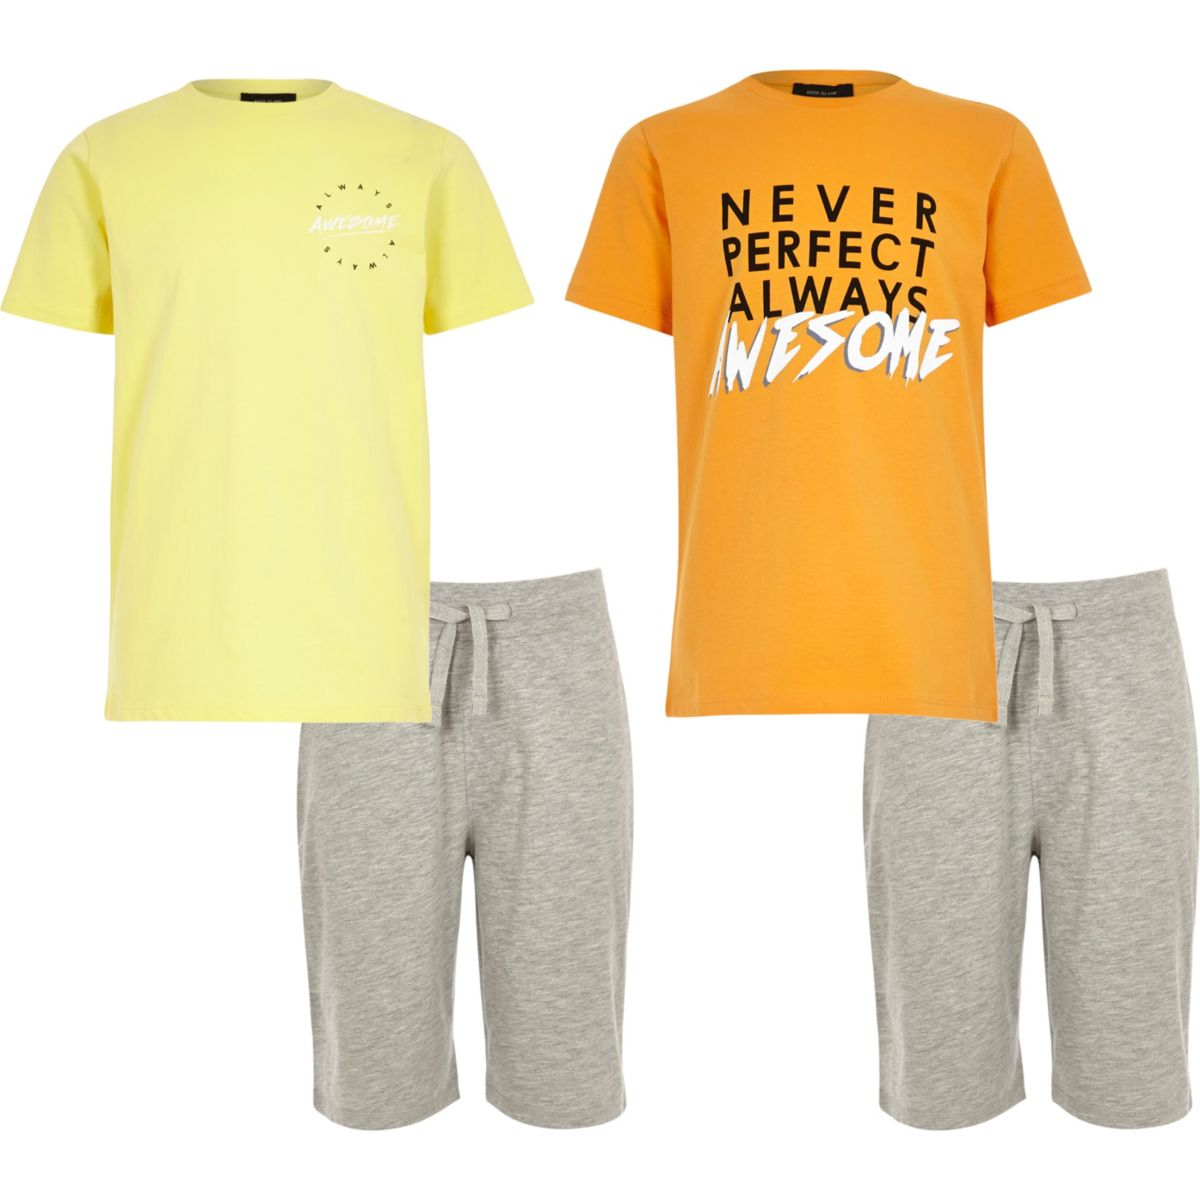 Boys yellow and orange pyjama set multipack